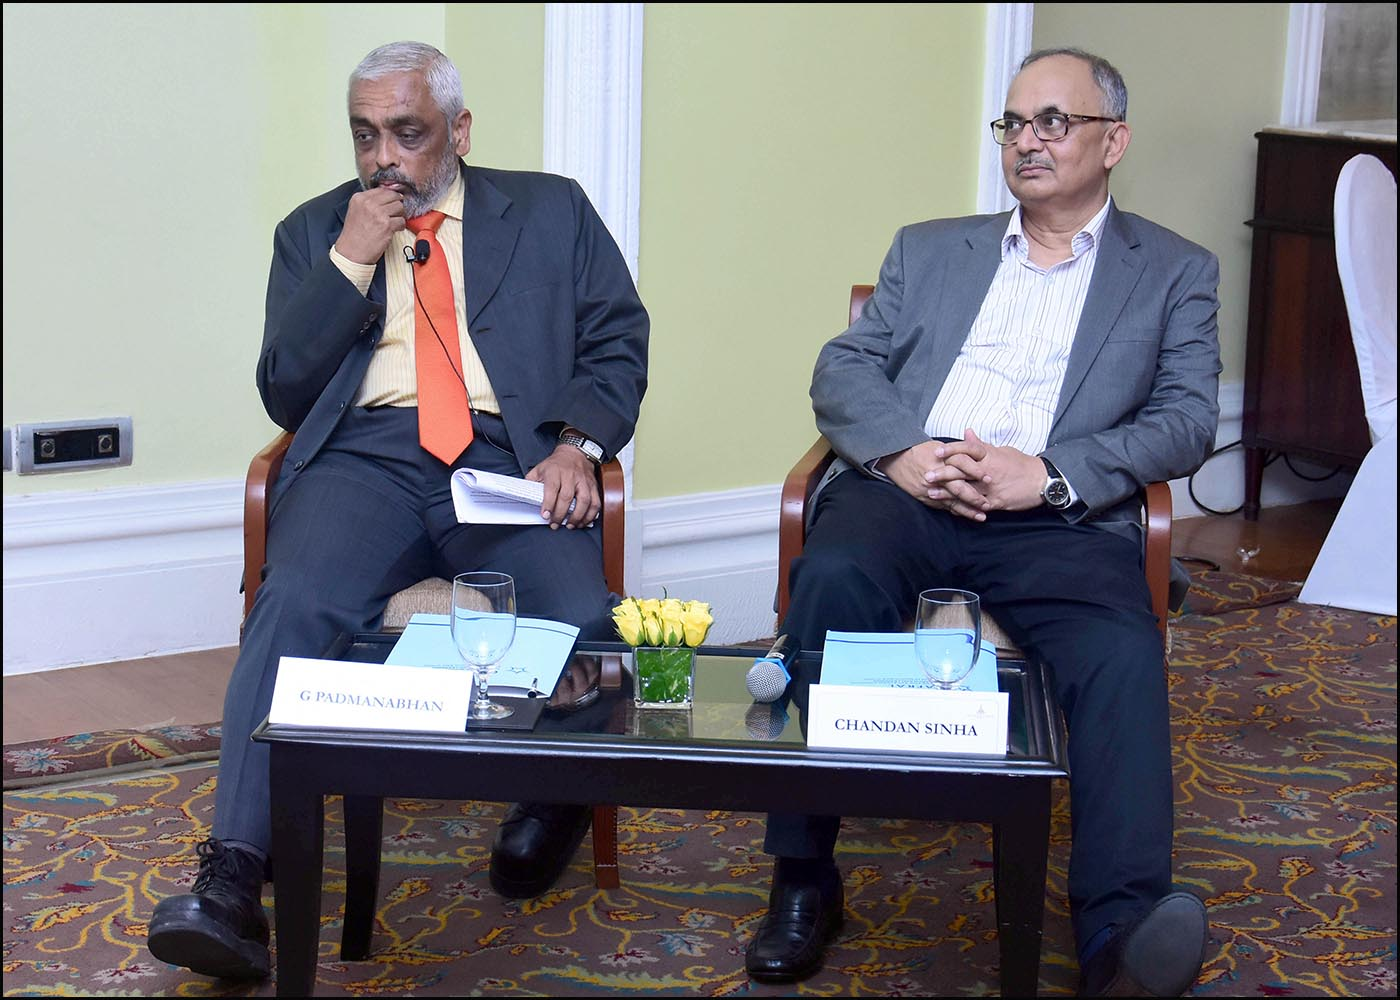 L:R G Padmanabhan and Chandan Sinha, Addl Director, CAFRAL